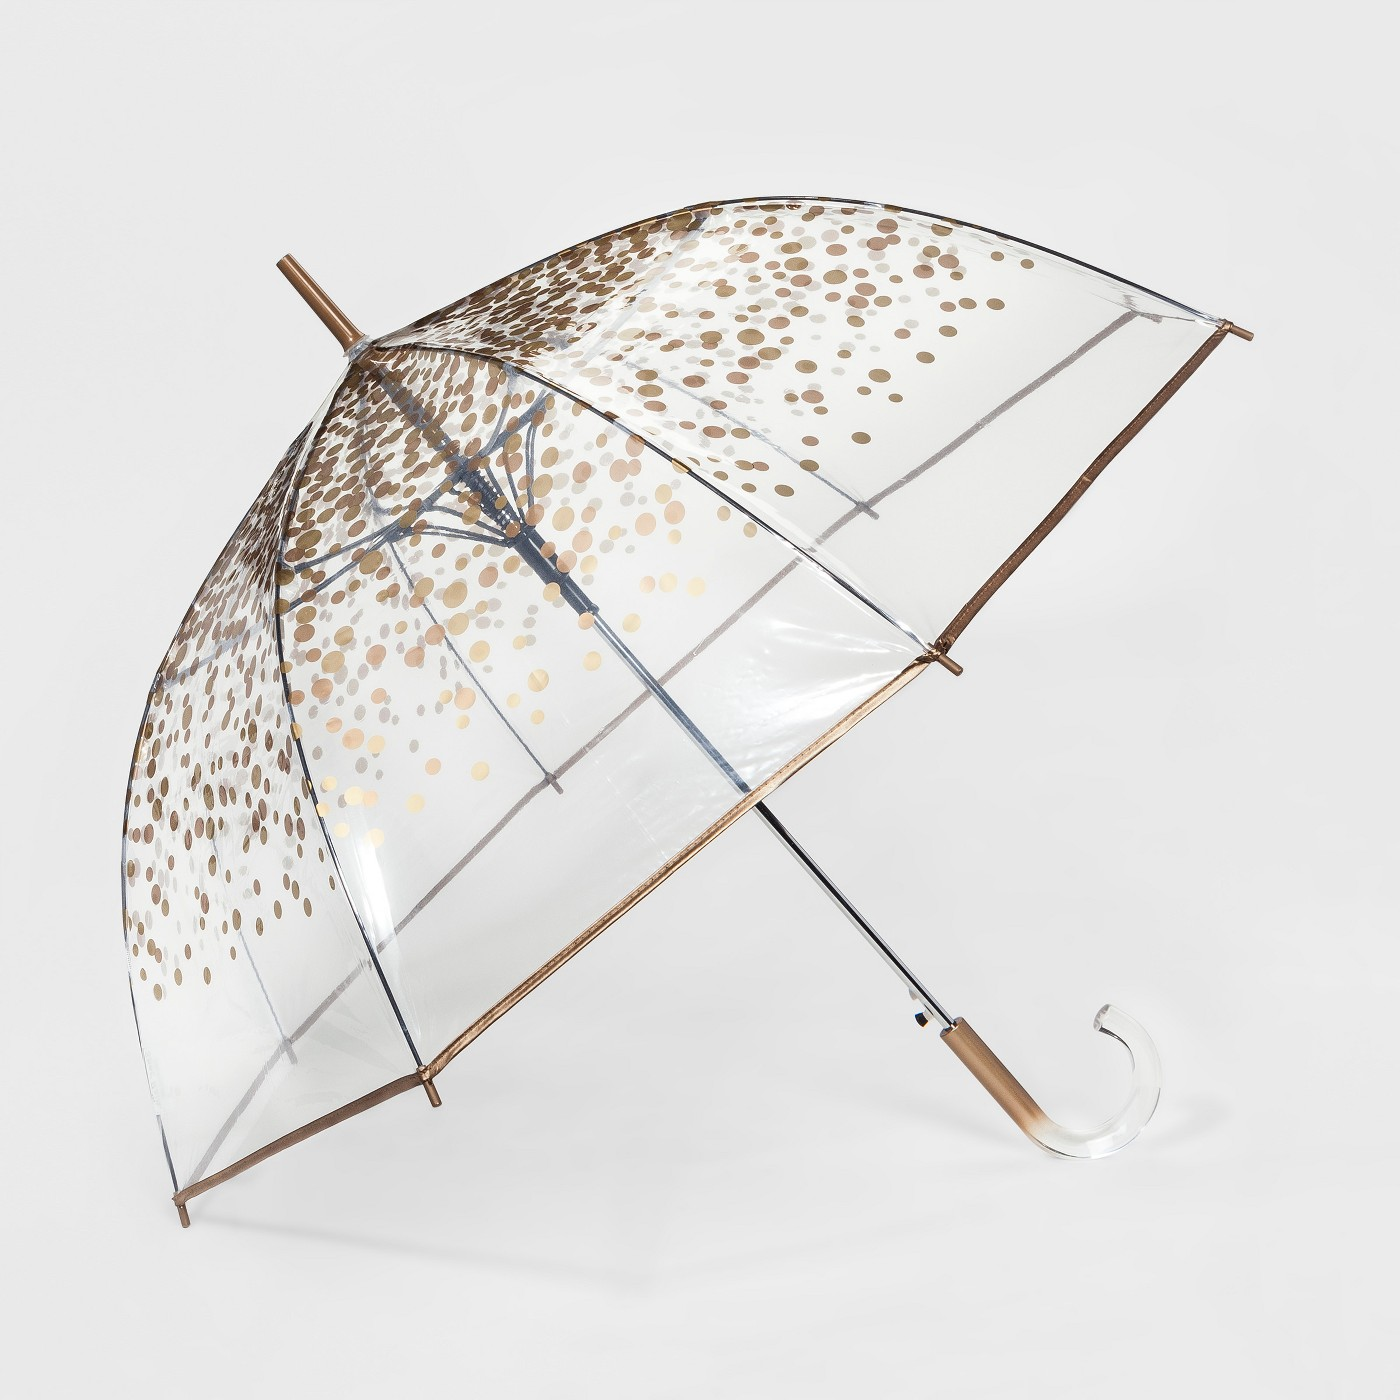 product shot of a clear wedding umbrella for rain with gold polka dots